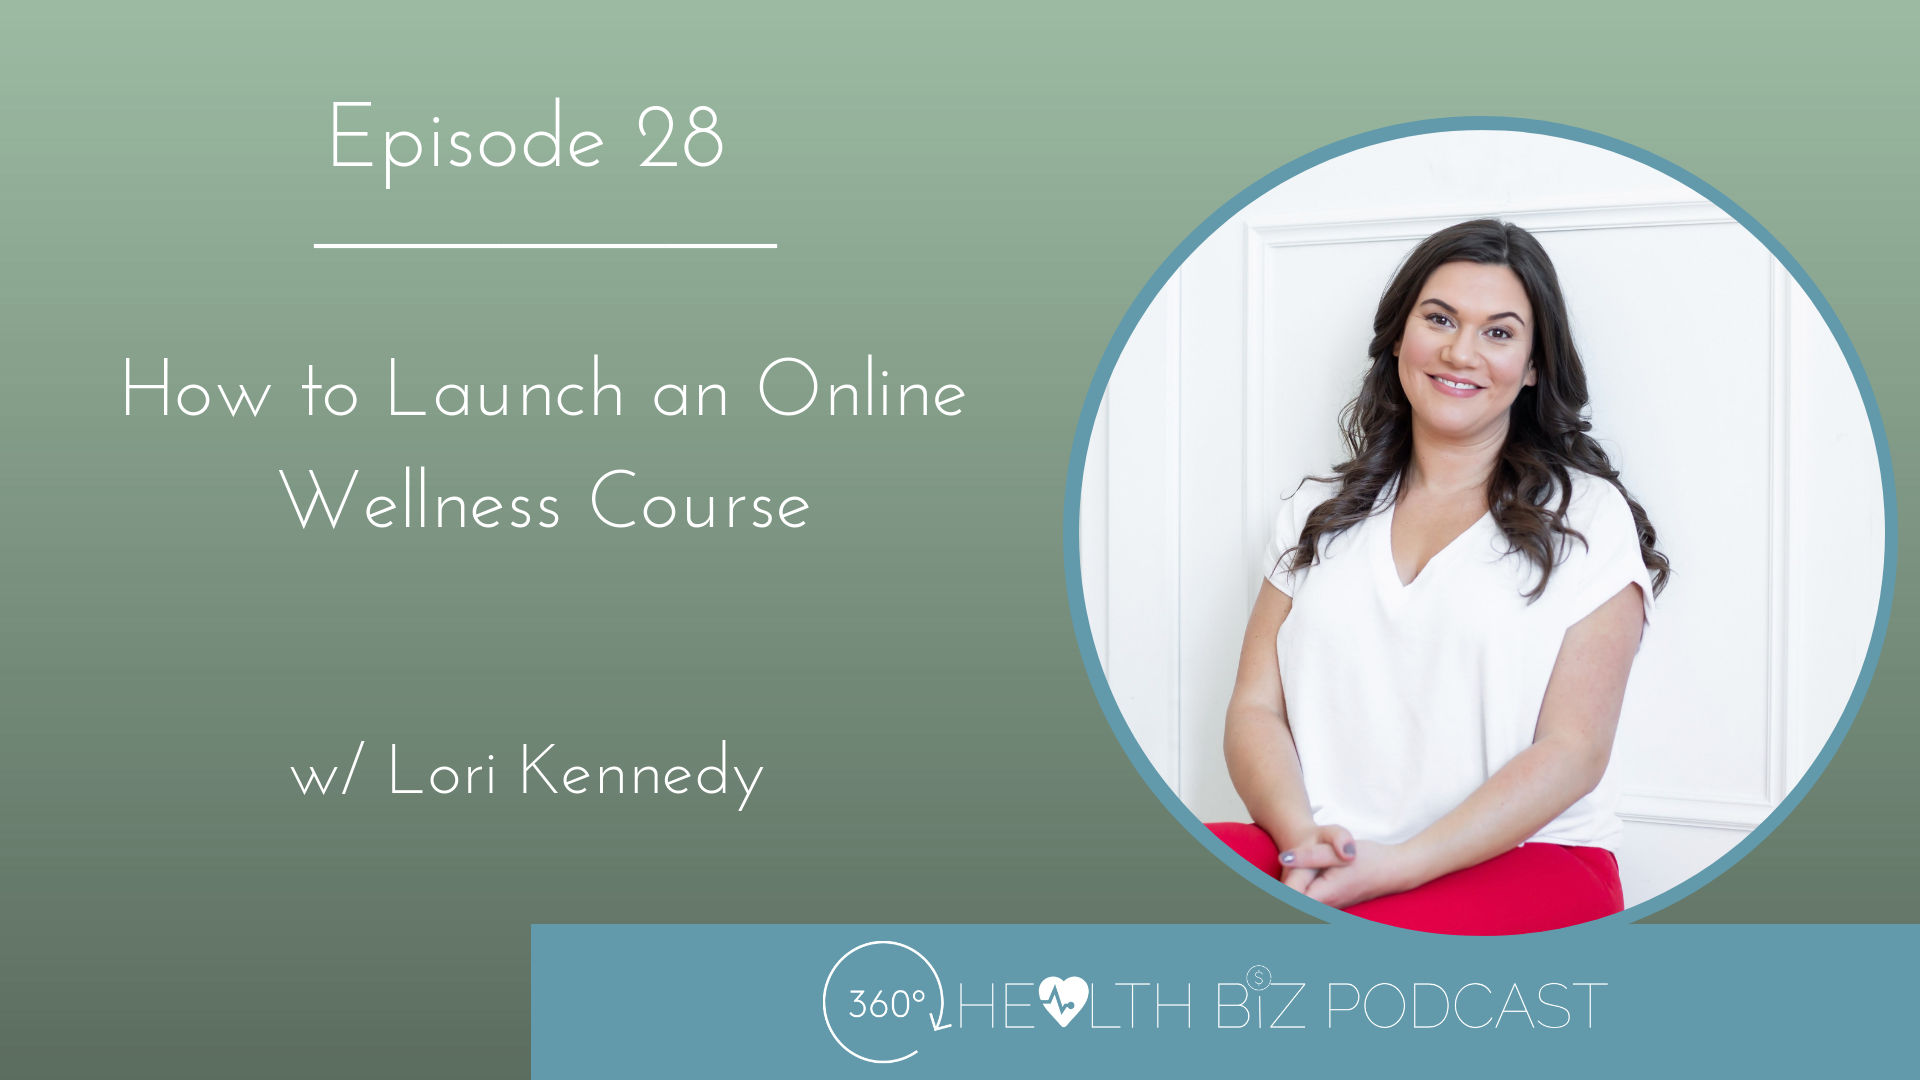 How to Launch an Online Wellness Course